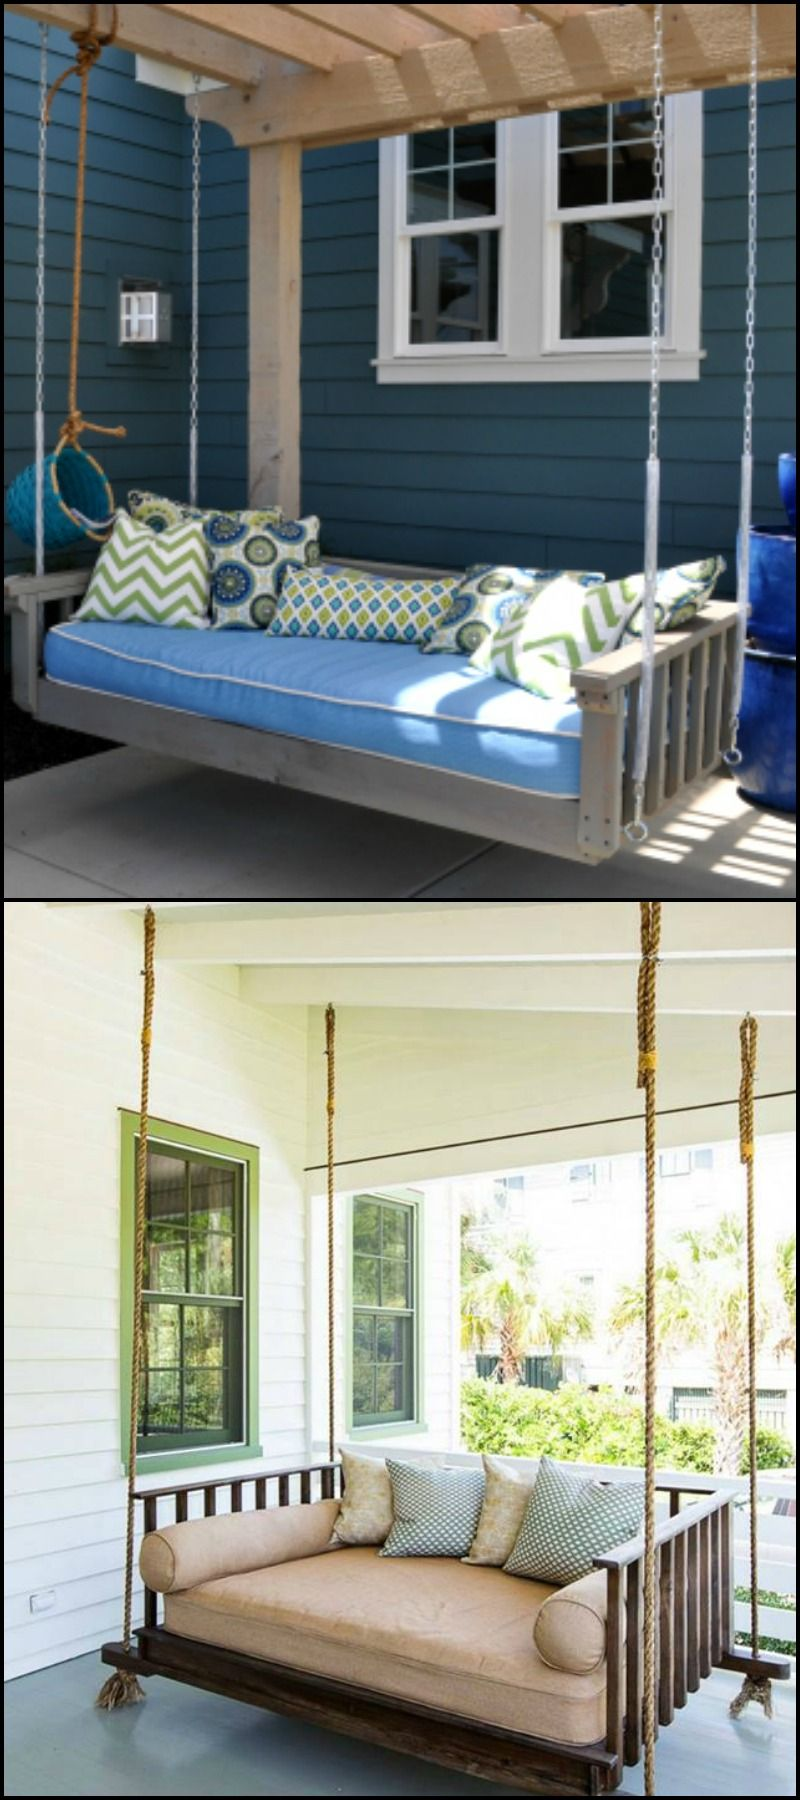 How to build a hanging daybed swing Schommelbank, Bed